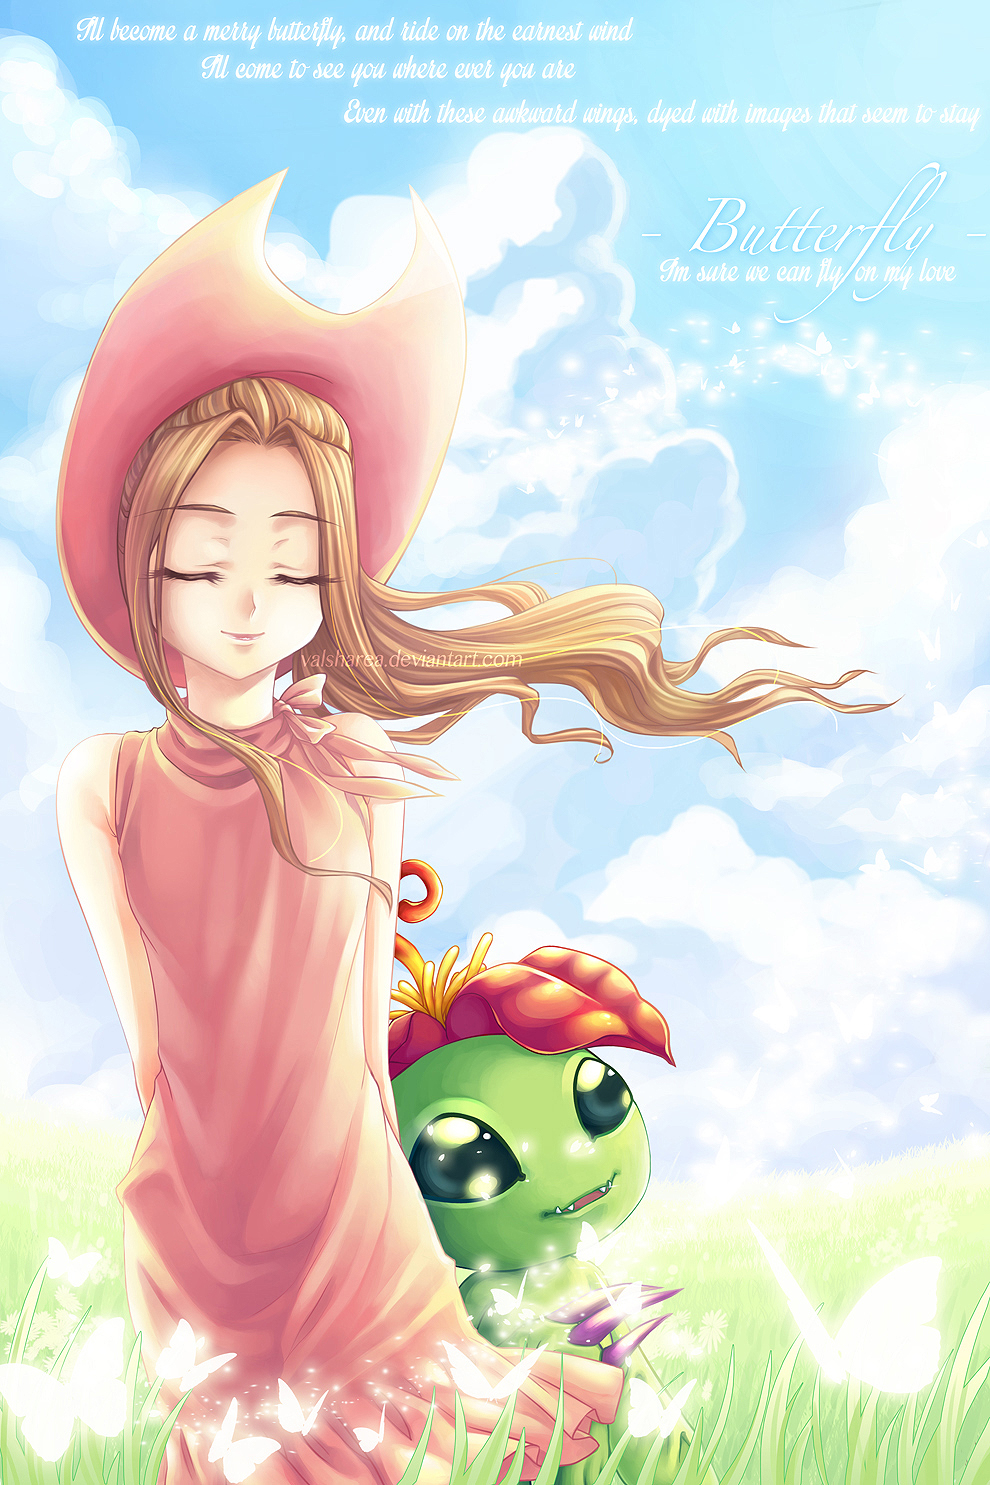 Pretty Girl Wallpaper Free Download Mimi From Digimon Images Mimi